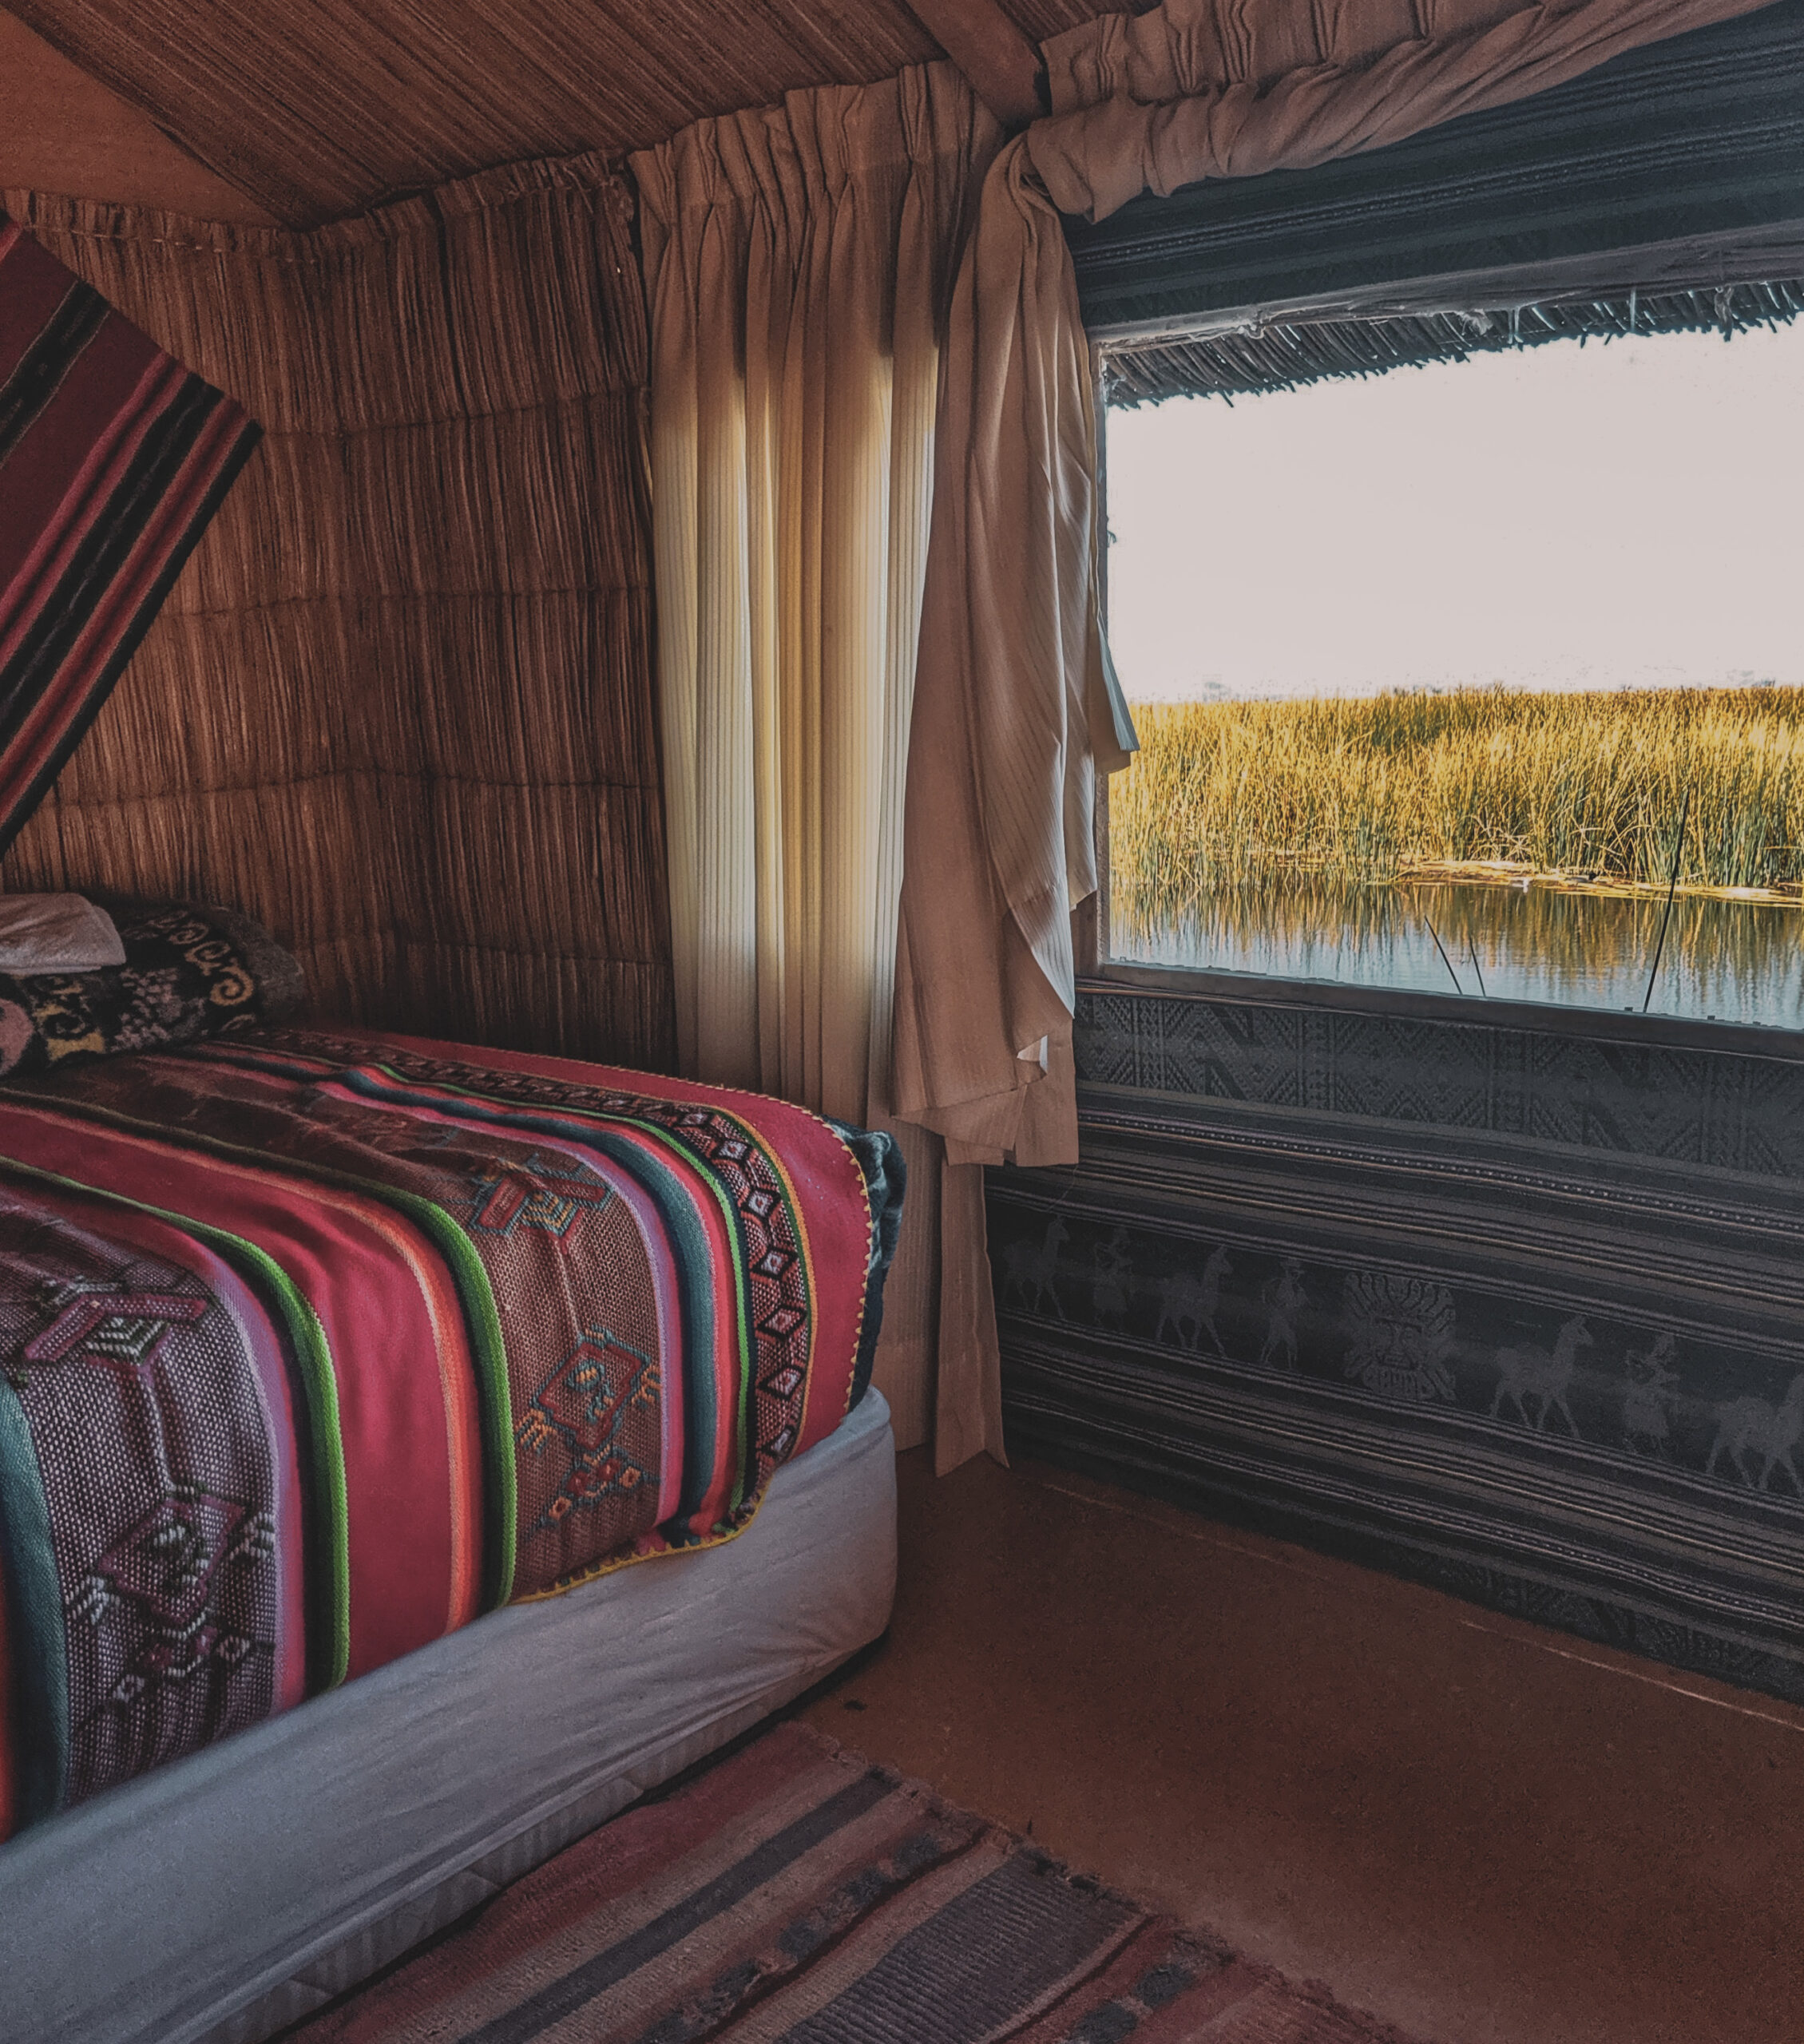 A bedroom in a guesthouse on an uros island.